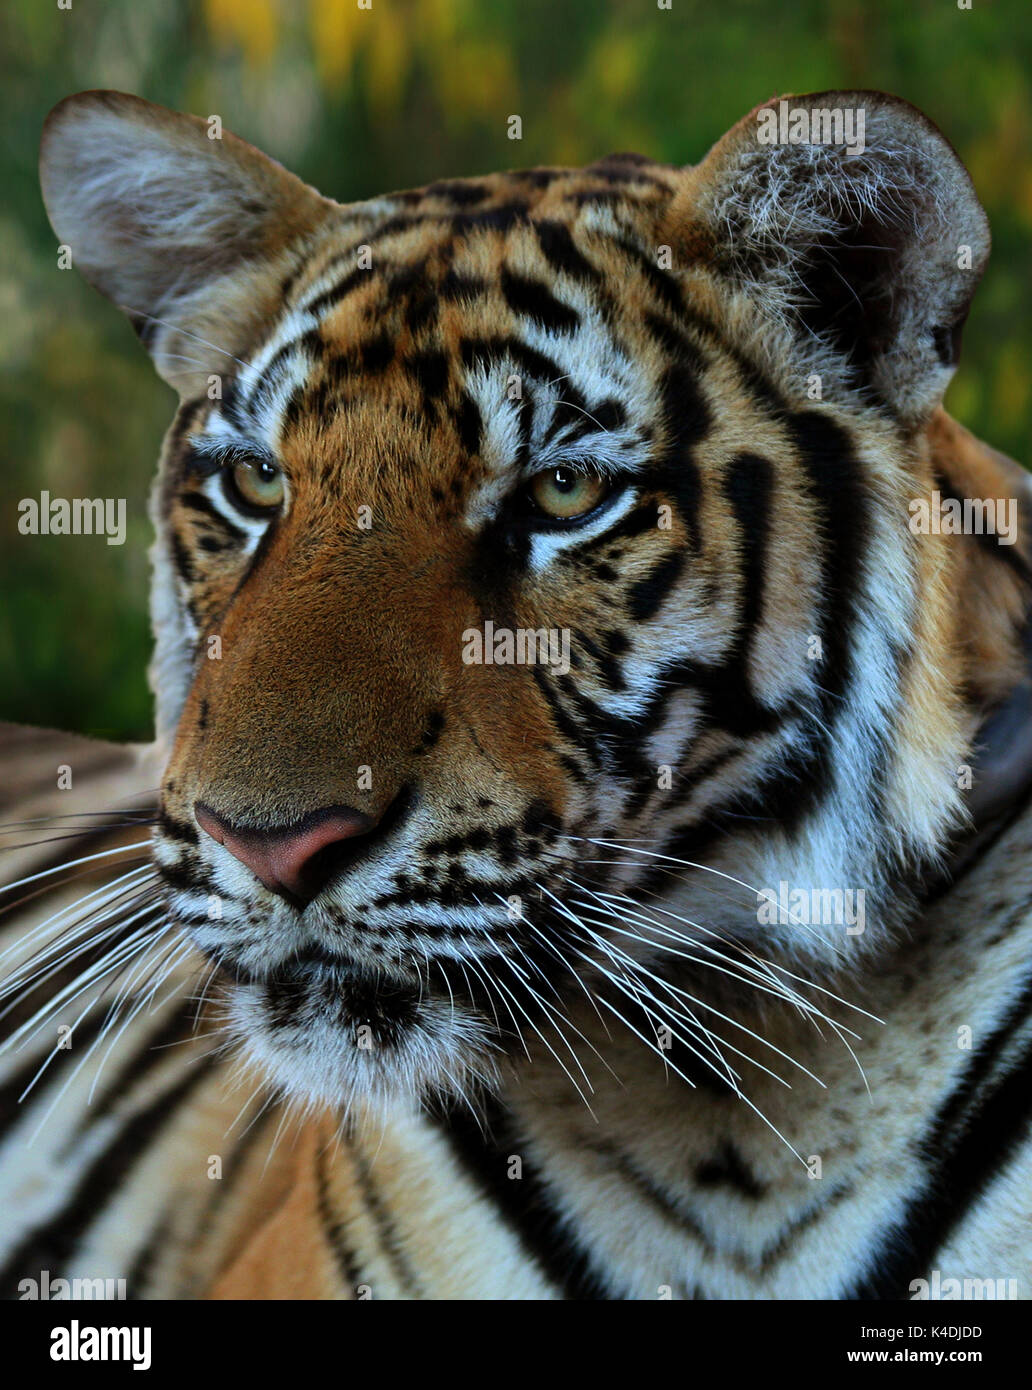 Hot day. Closeup portrait of a Big Indo-Chinese  tiger in the Buddhist Tiger Temple, Kanchanaburi, Thailand - Stock Image